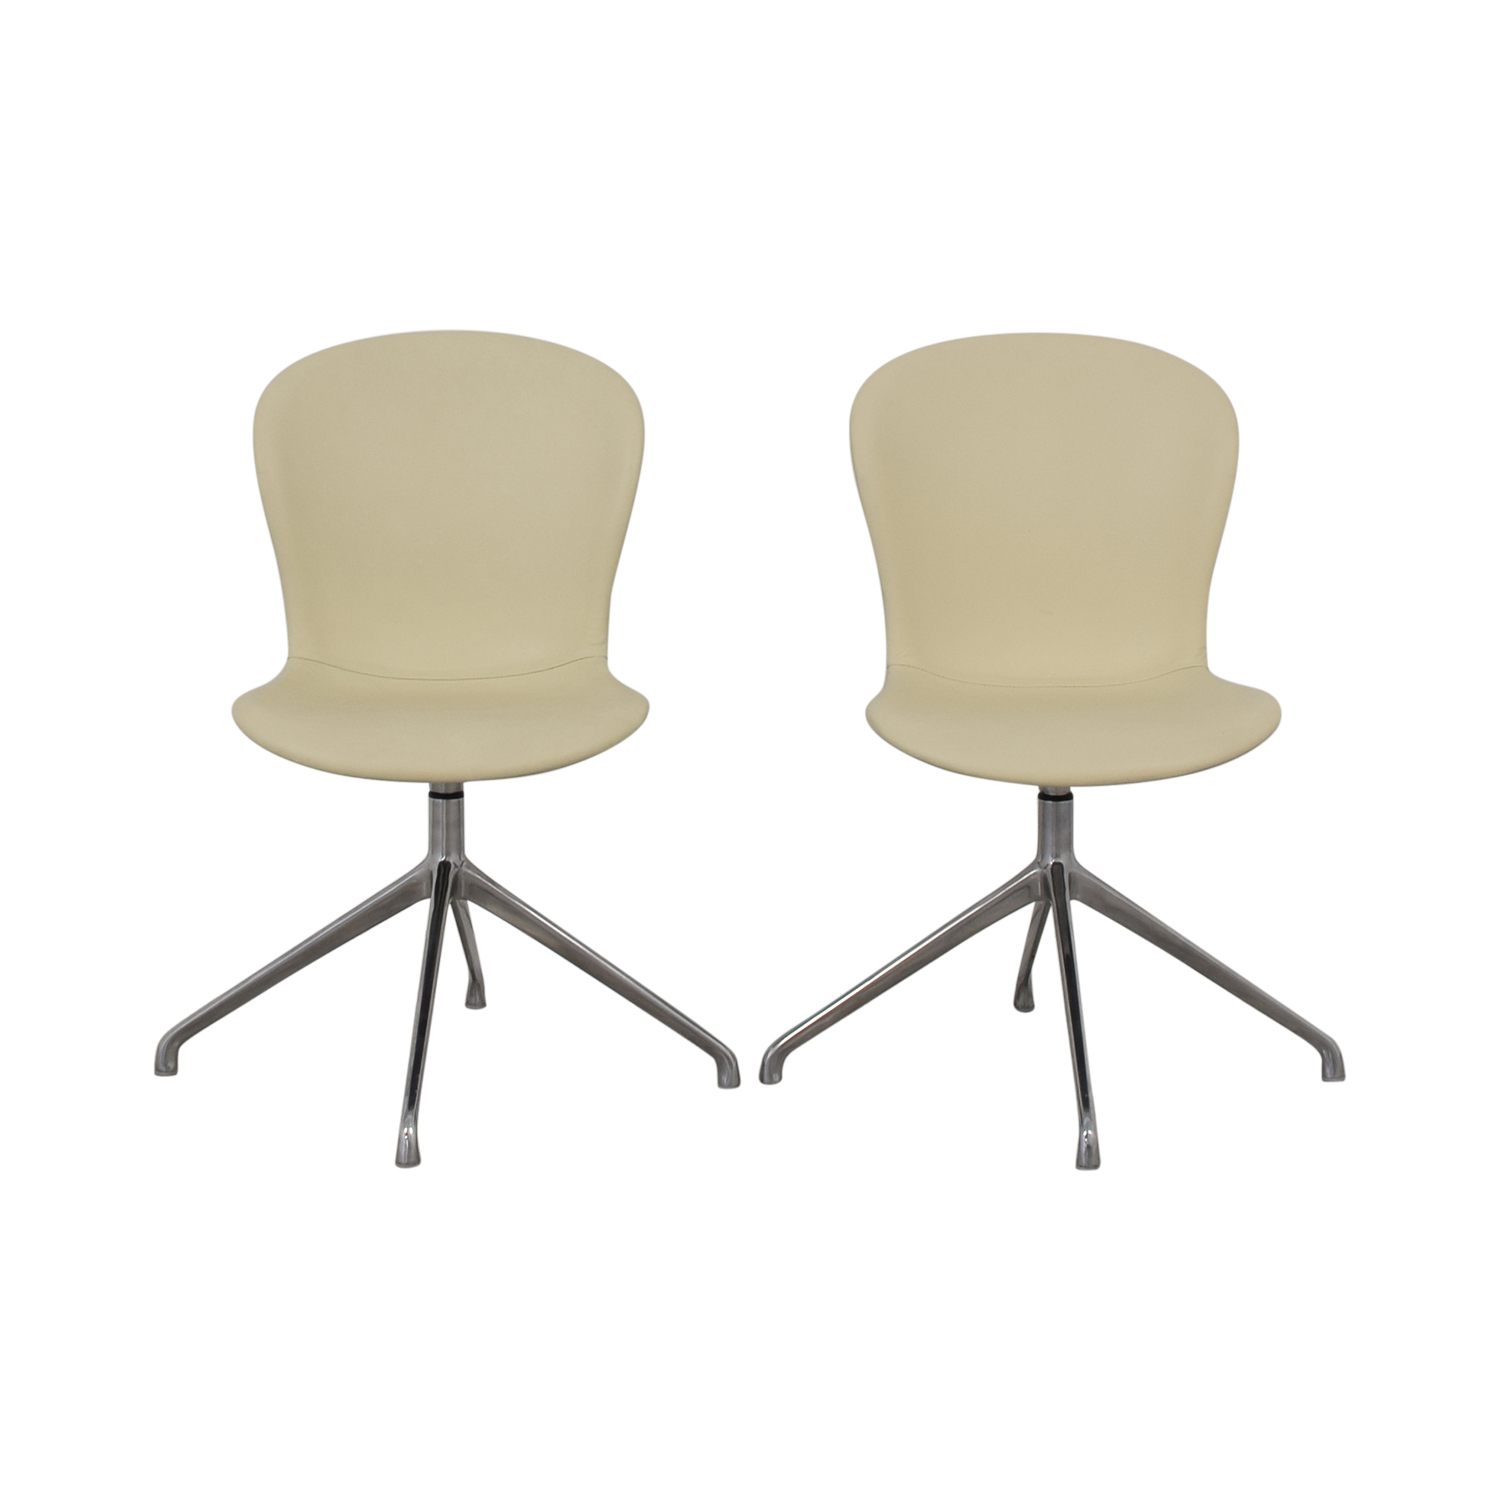 BoConcept BoConcept Adelaide Dining Chairs Dining Chairs